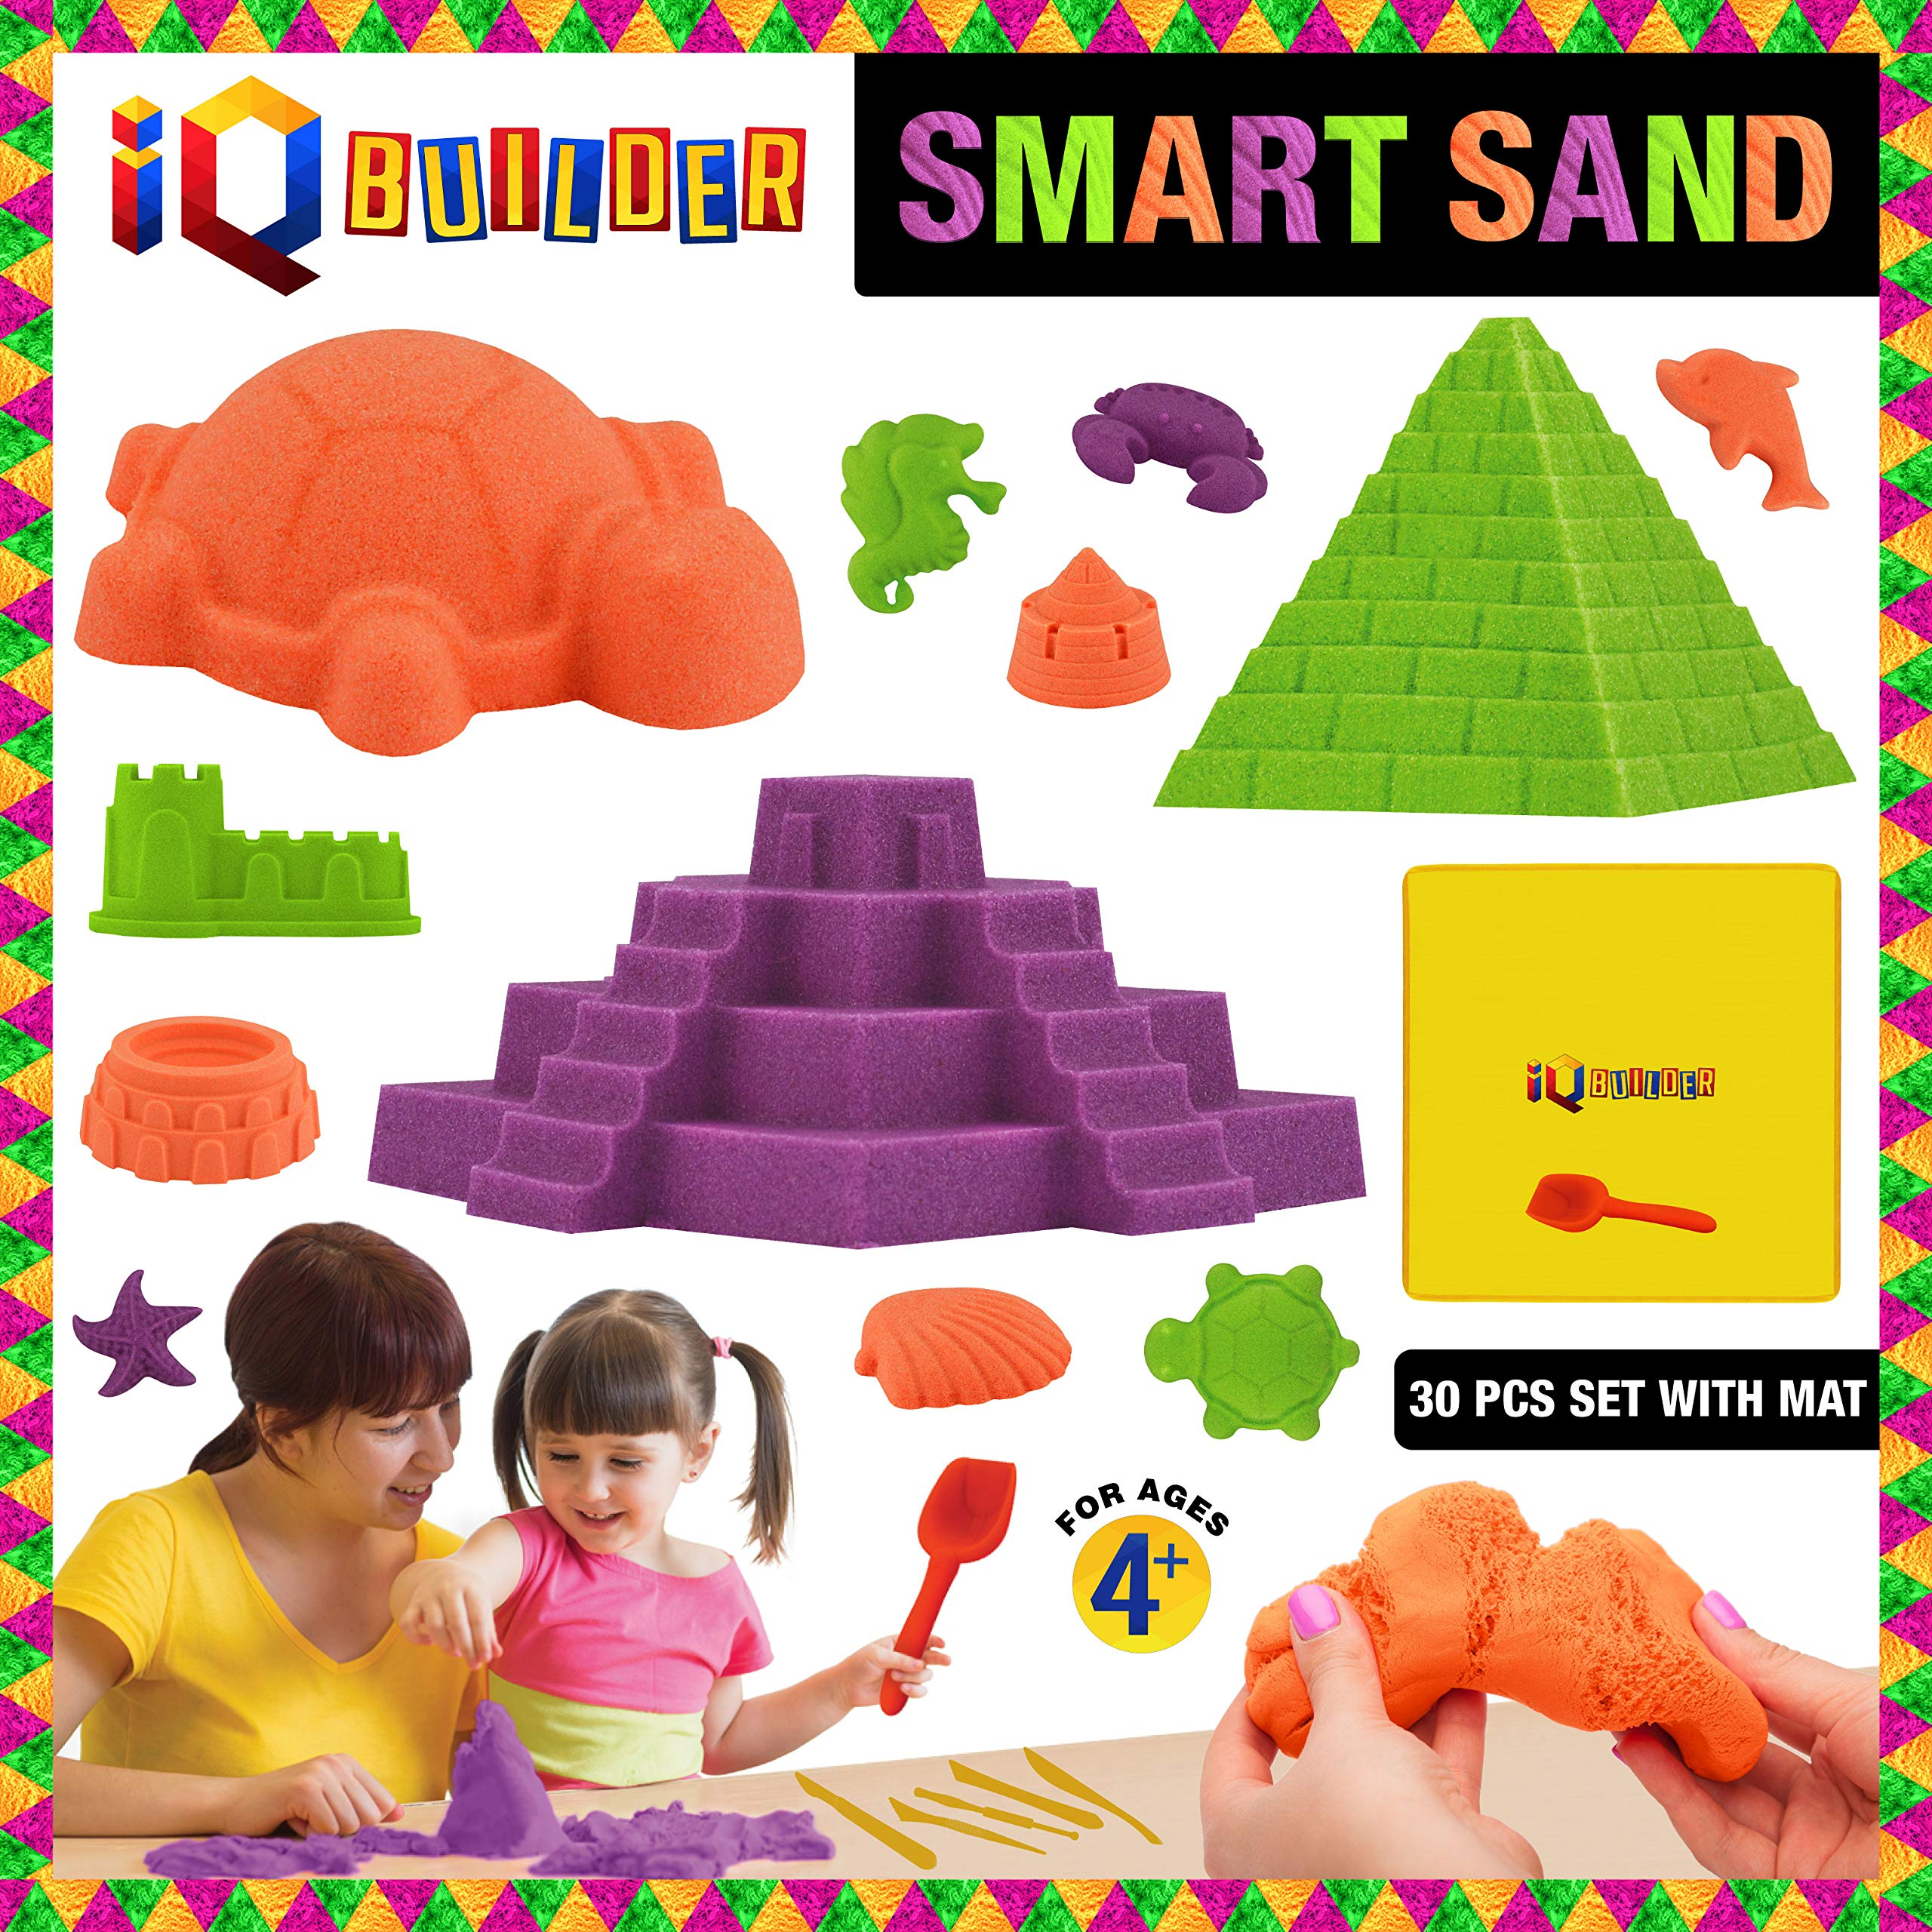 IQ BUILDER | Sensory Toys | Creative Educational Art Play Sand for Boys and Girls Ages 3 4 5 6 7 8 9 10 Year Old + | Fun MOLDABLE Synthetic Beach Sand KIT for Children | Best Toy Gift for Kids by IQ BUILDER (Image #1)